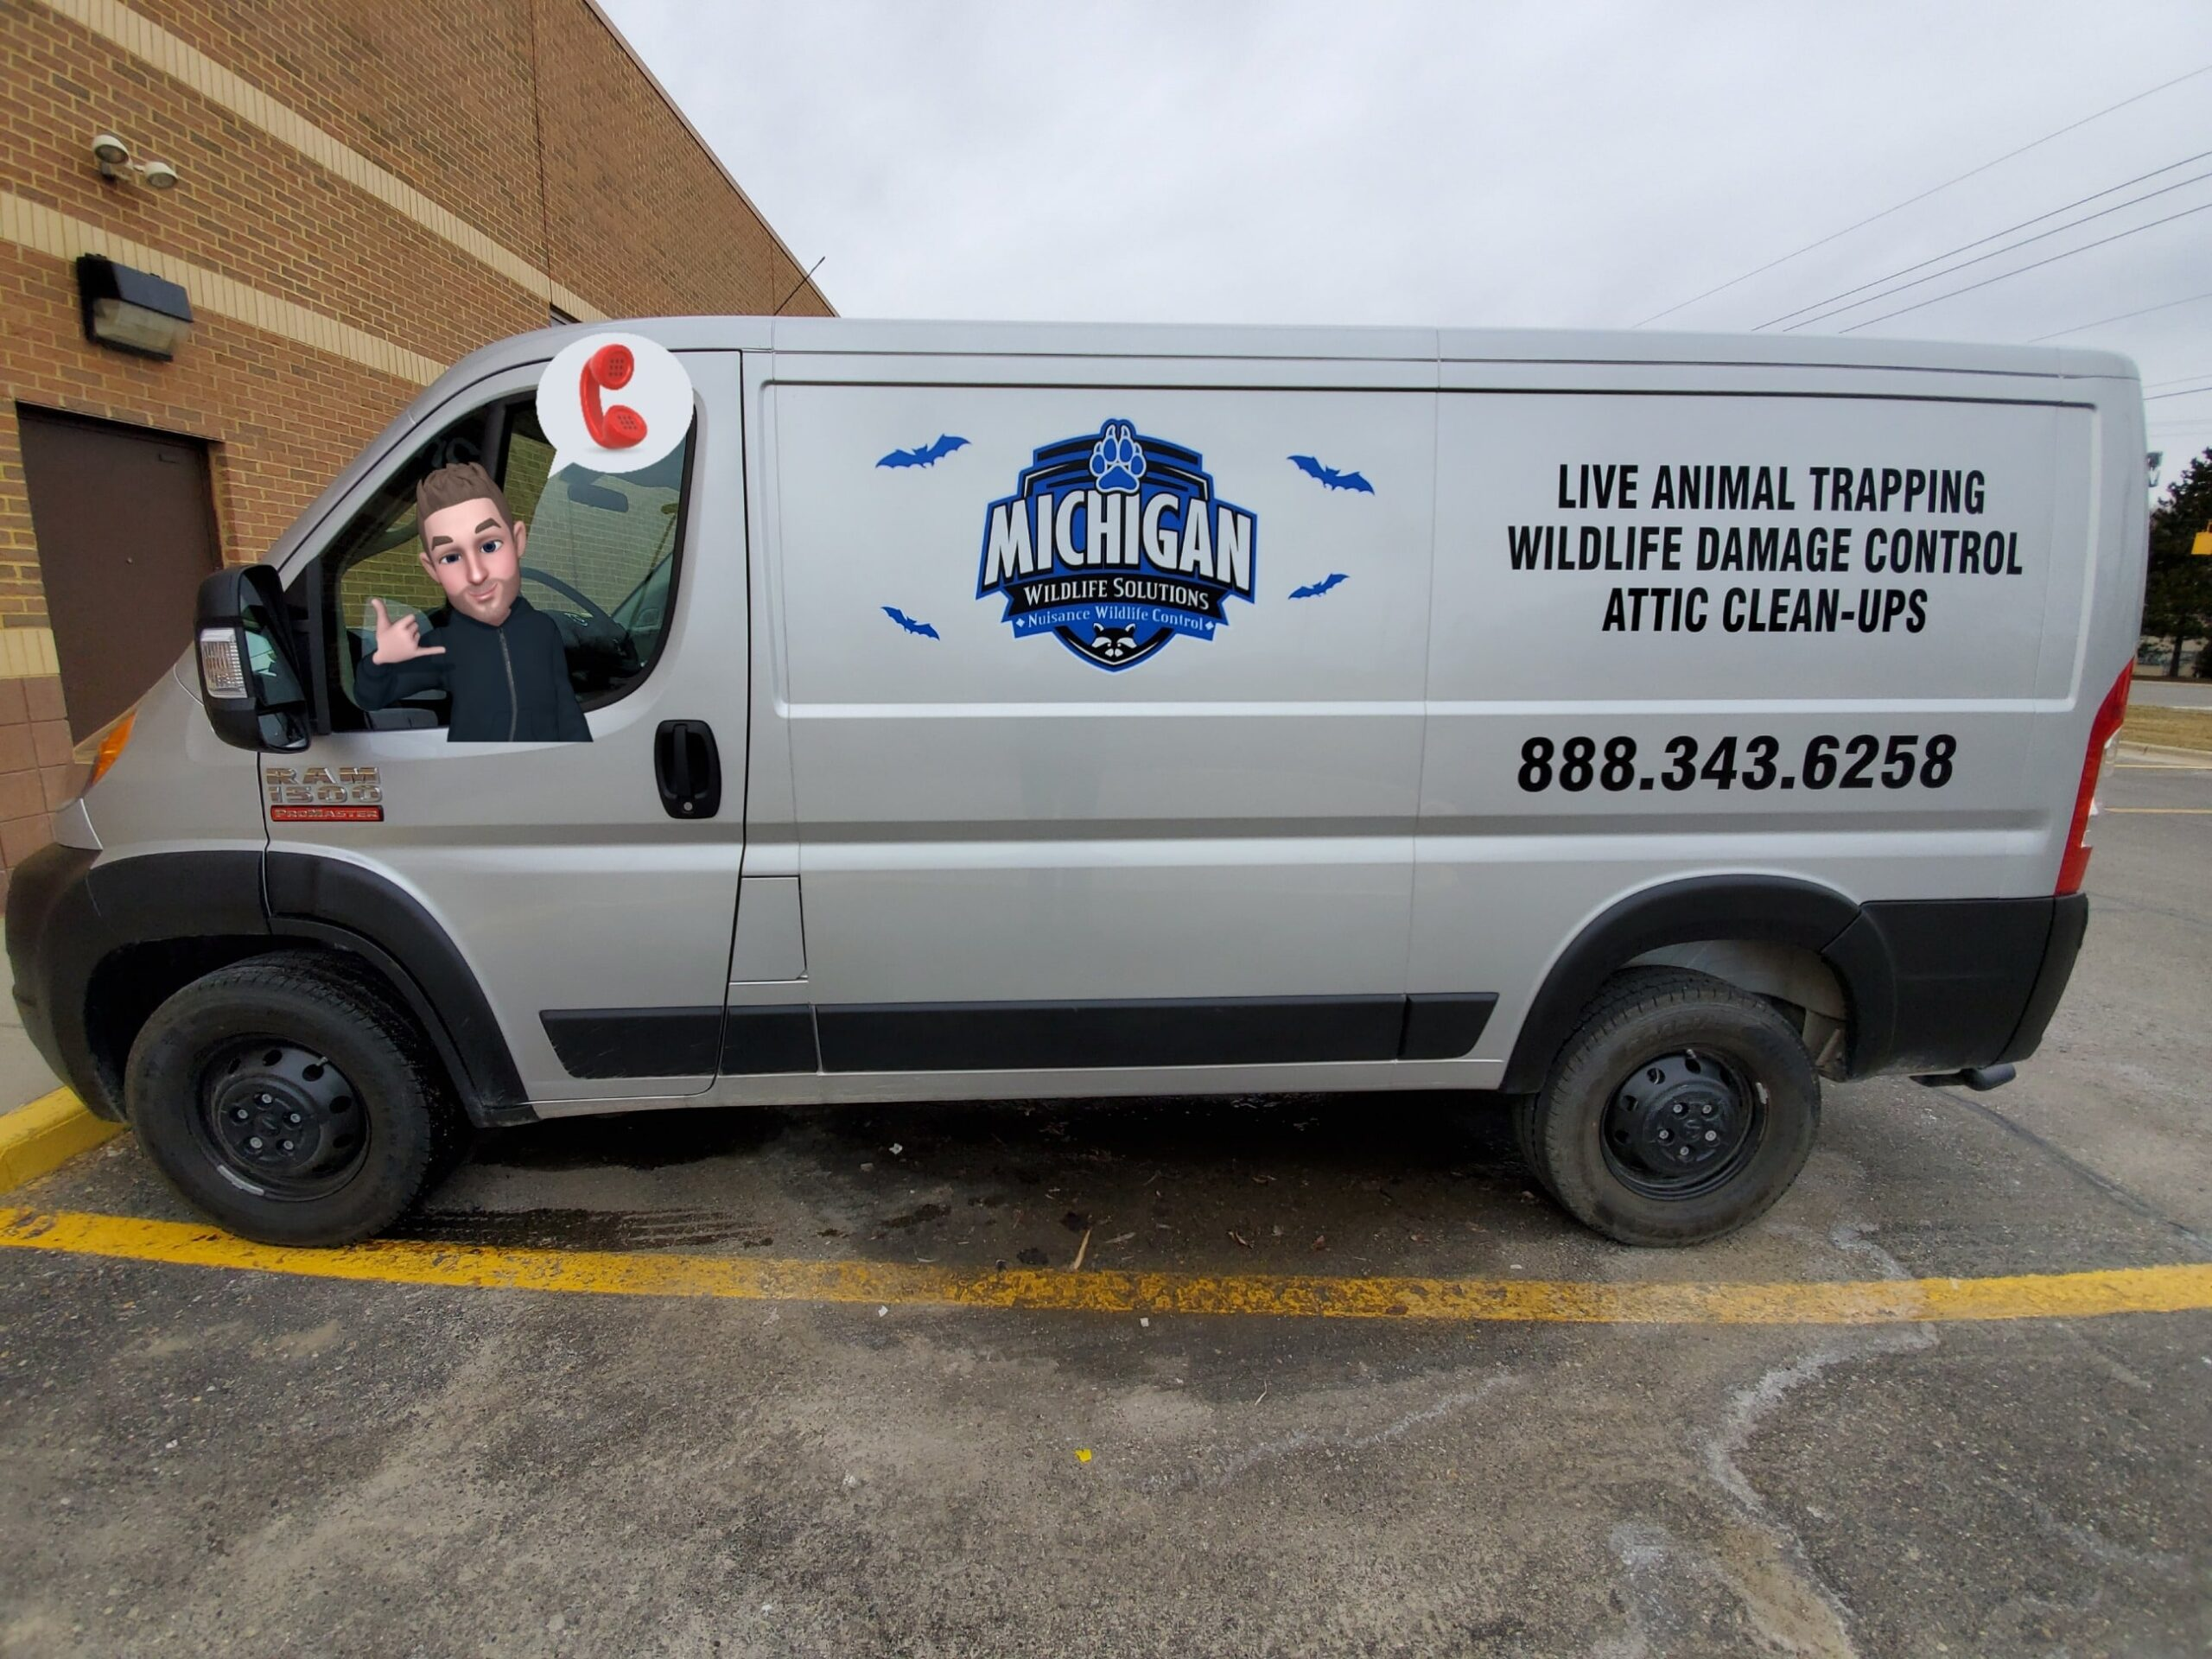 Michigan Wildlife Solutions Van